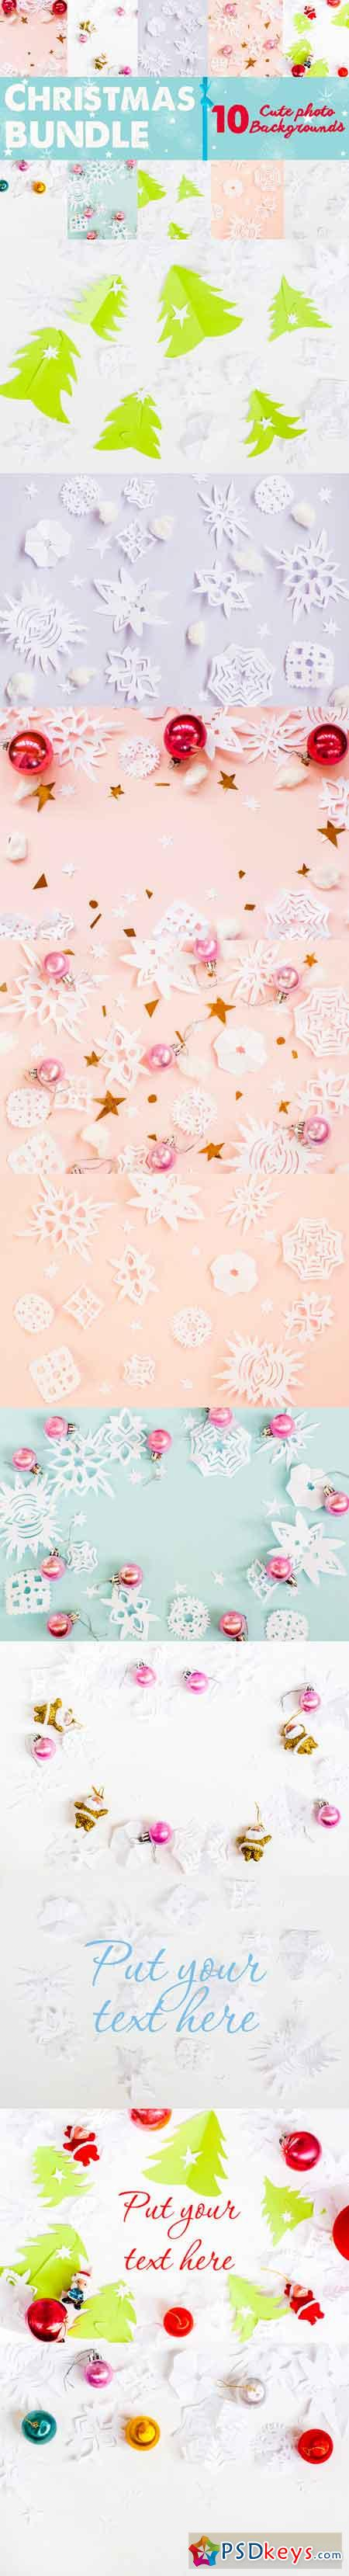 Christmas bundle paper snowflakes 466960